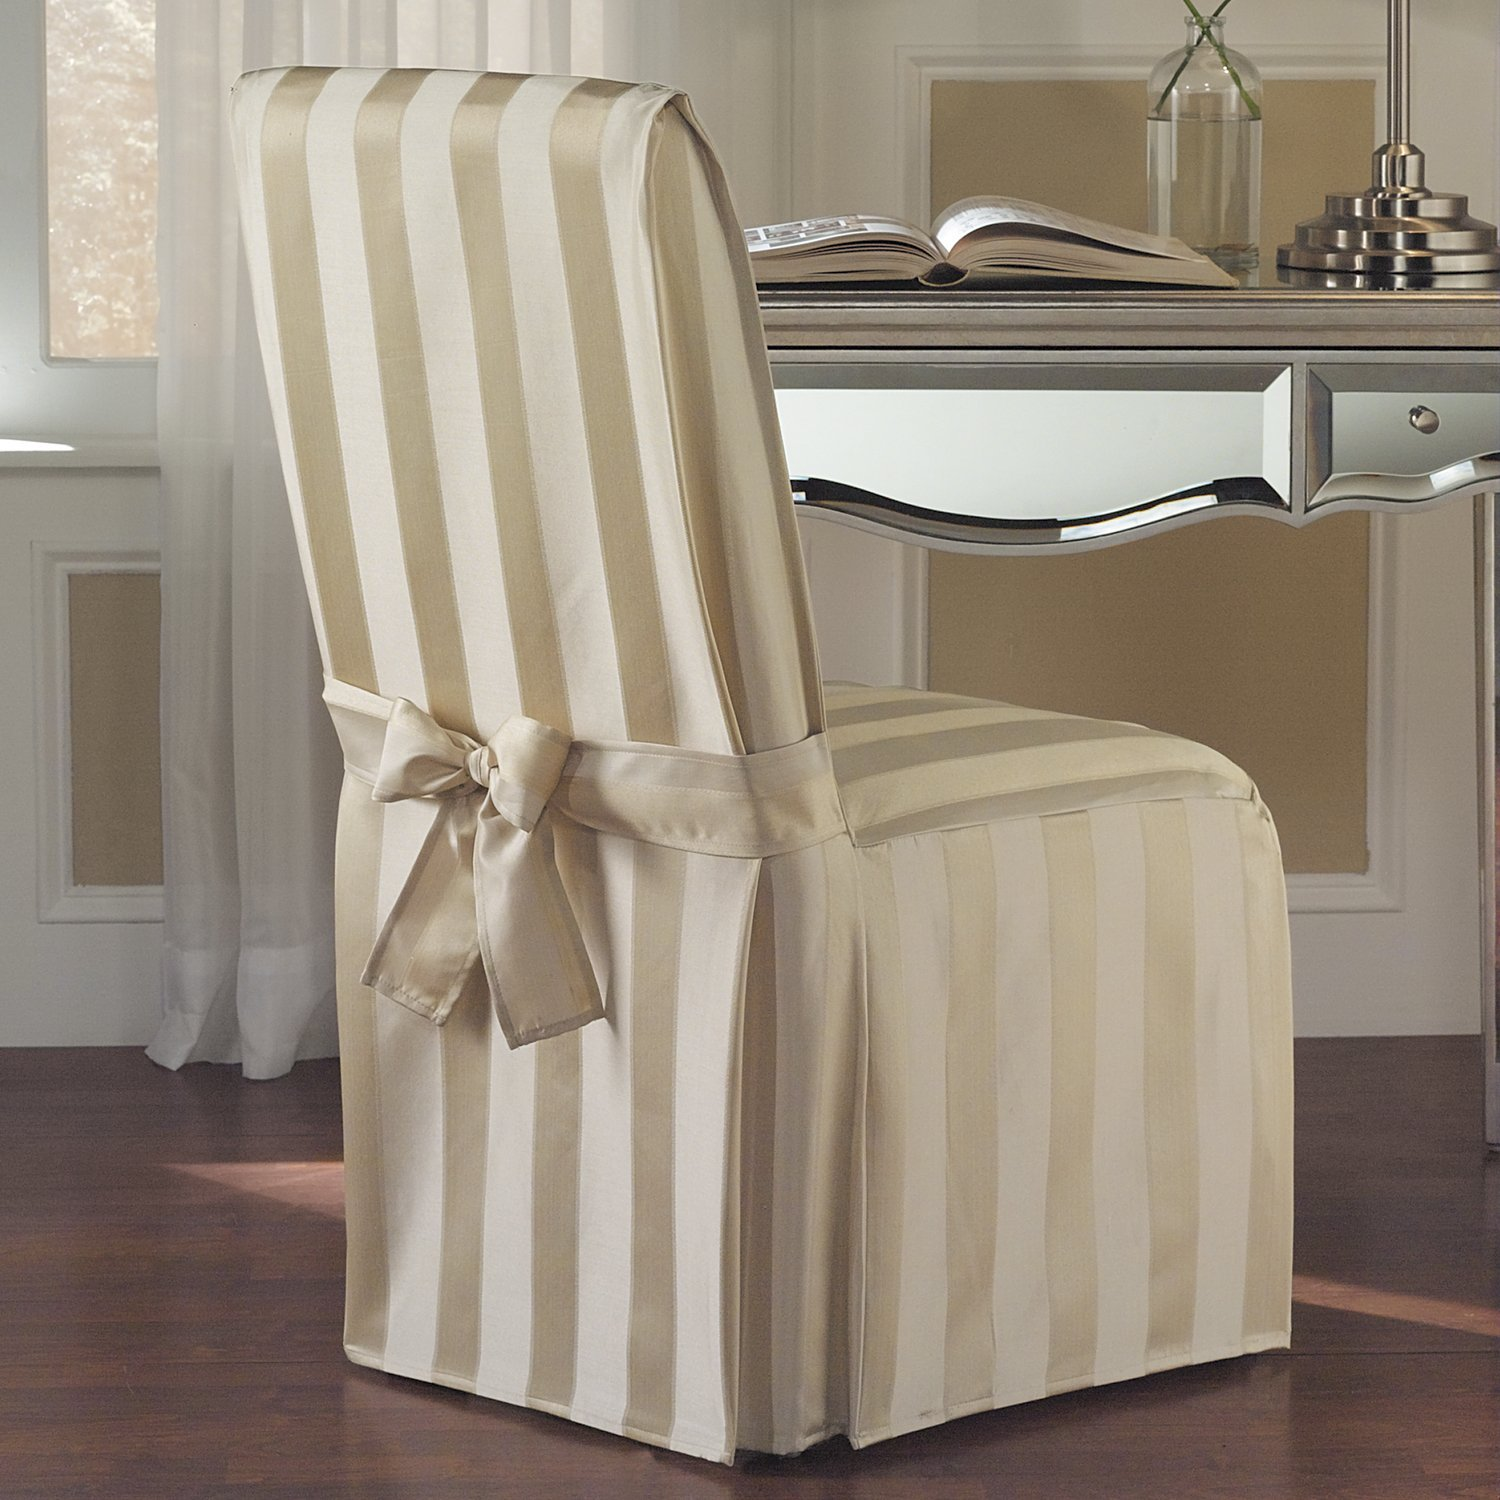 Covers For Chairs Top 10 Best Dining Room Chair Covers For Sale In 2015 Review